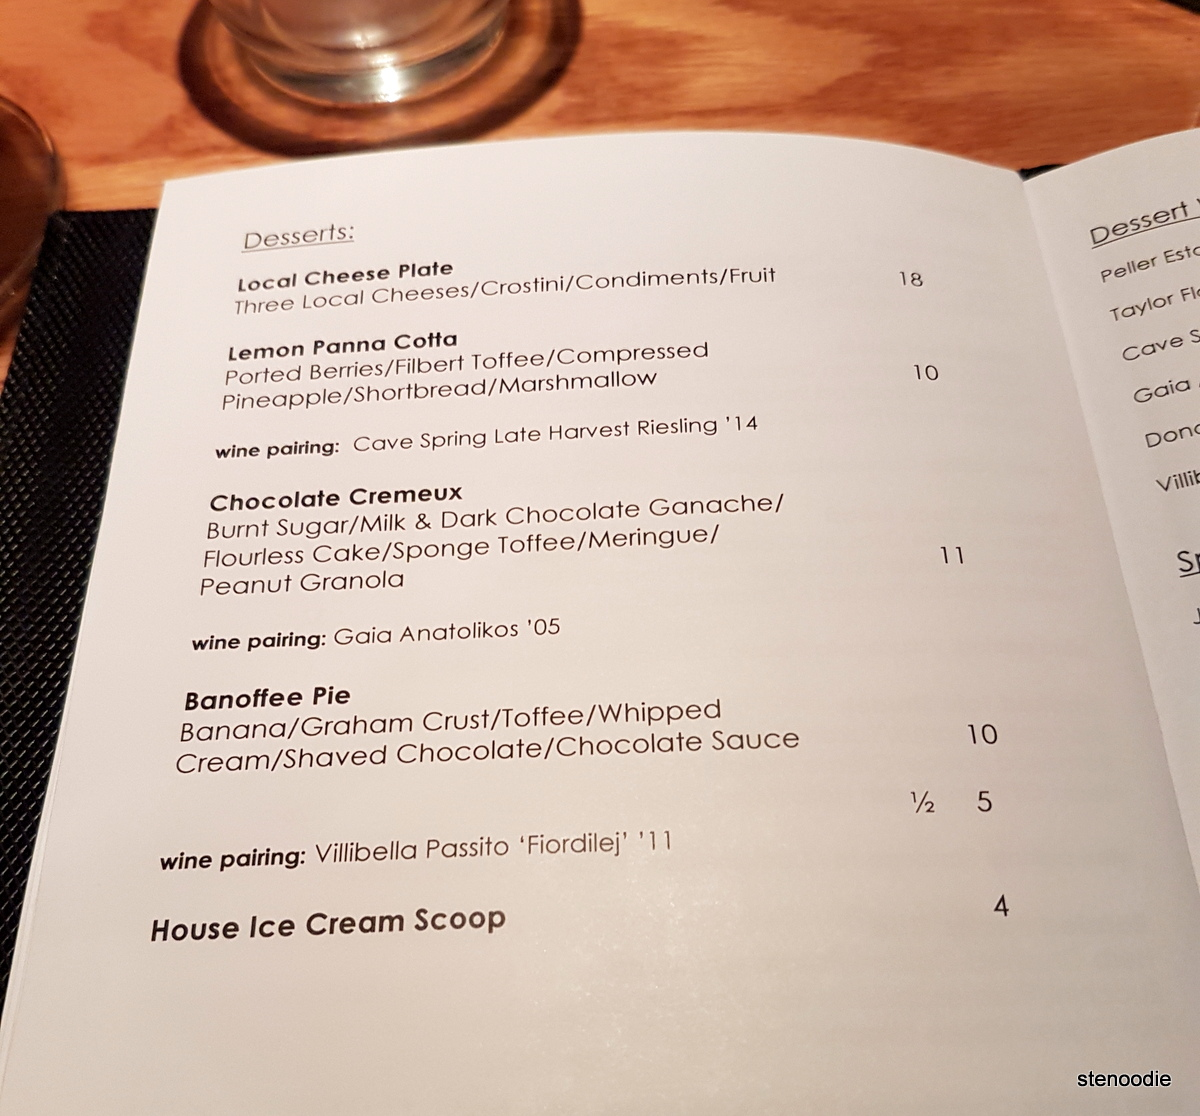 Allium Restaurant dessert menu and prices